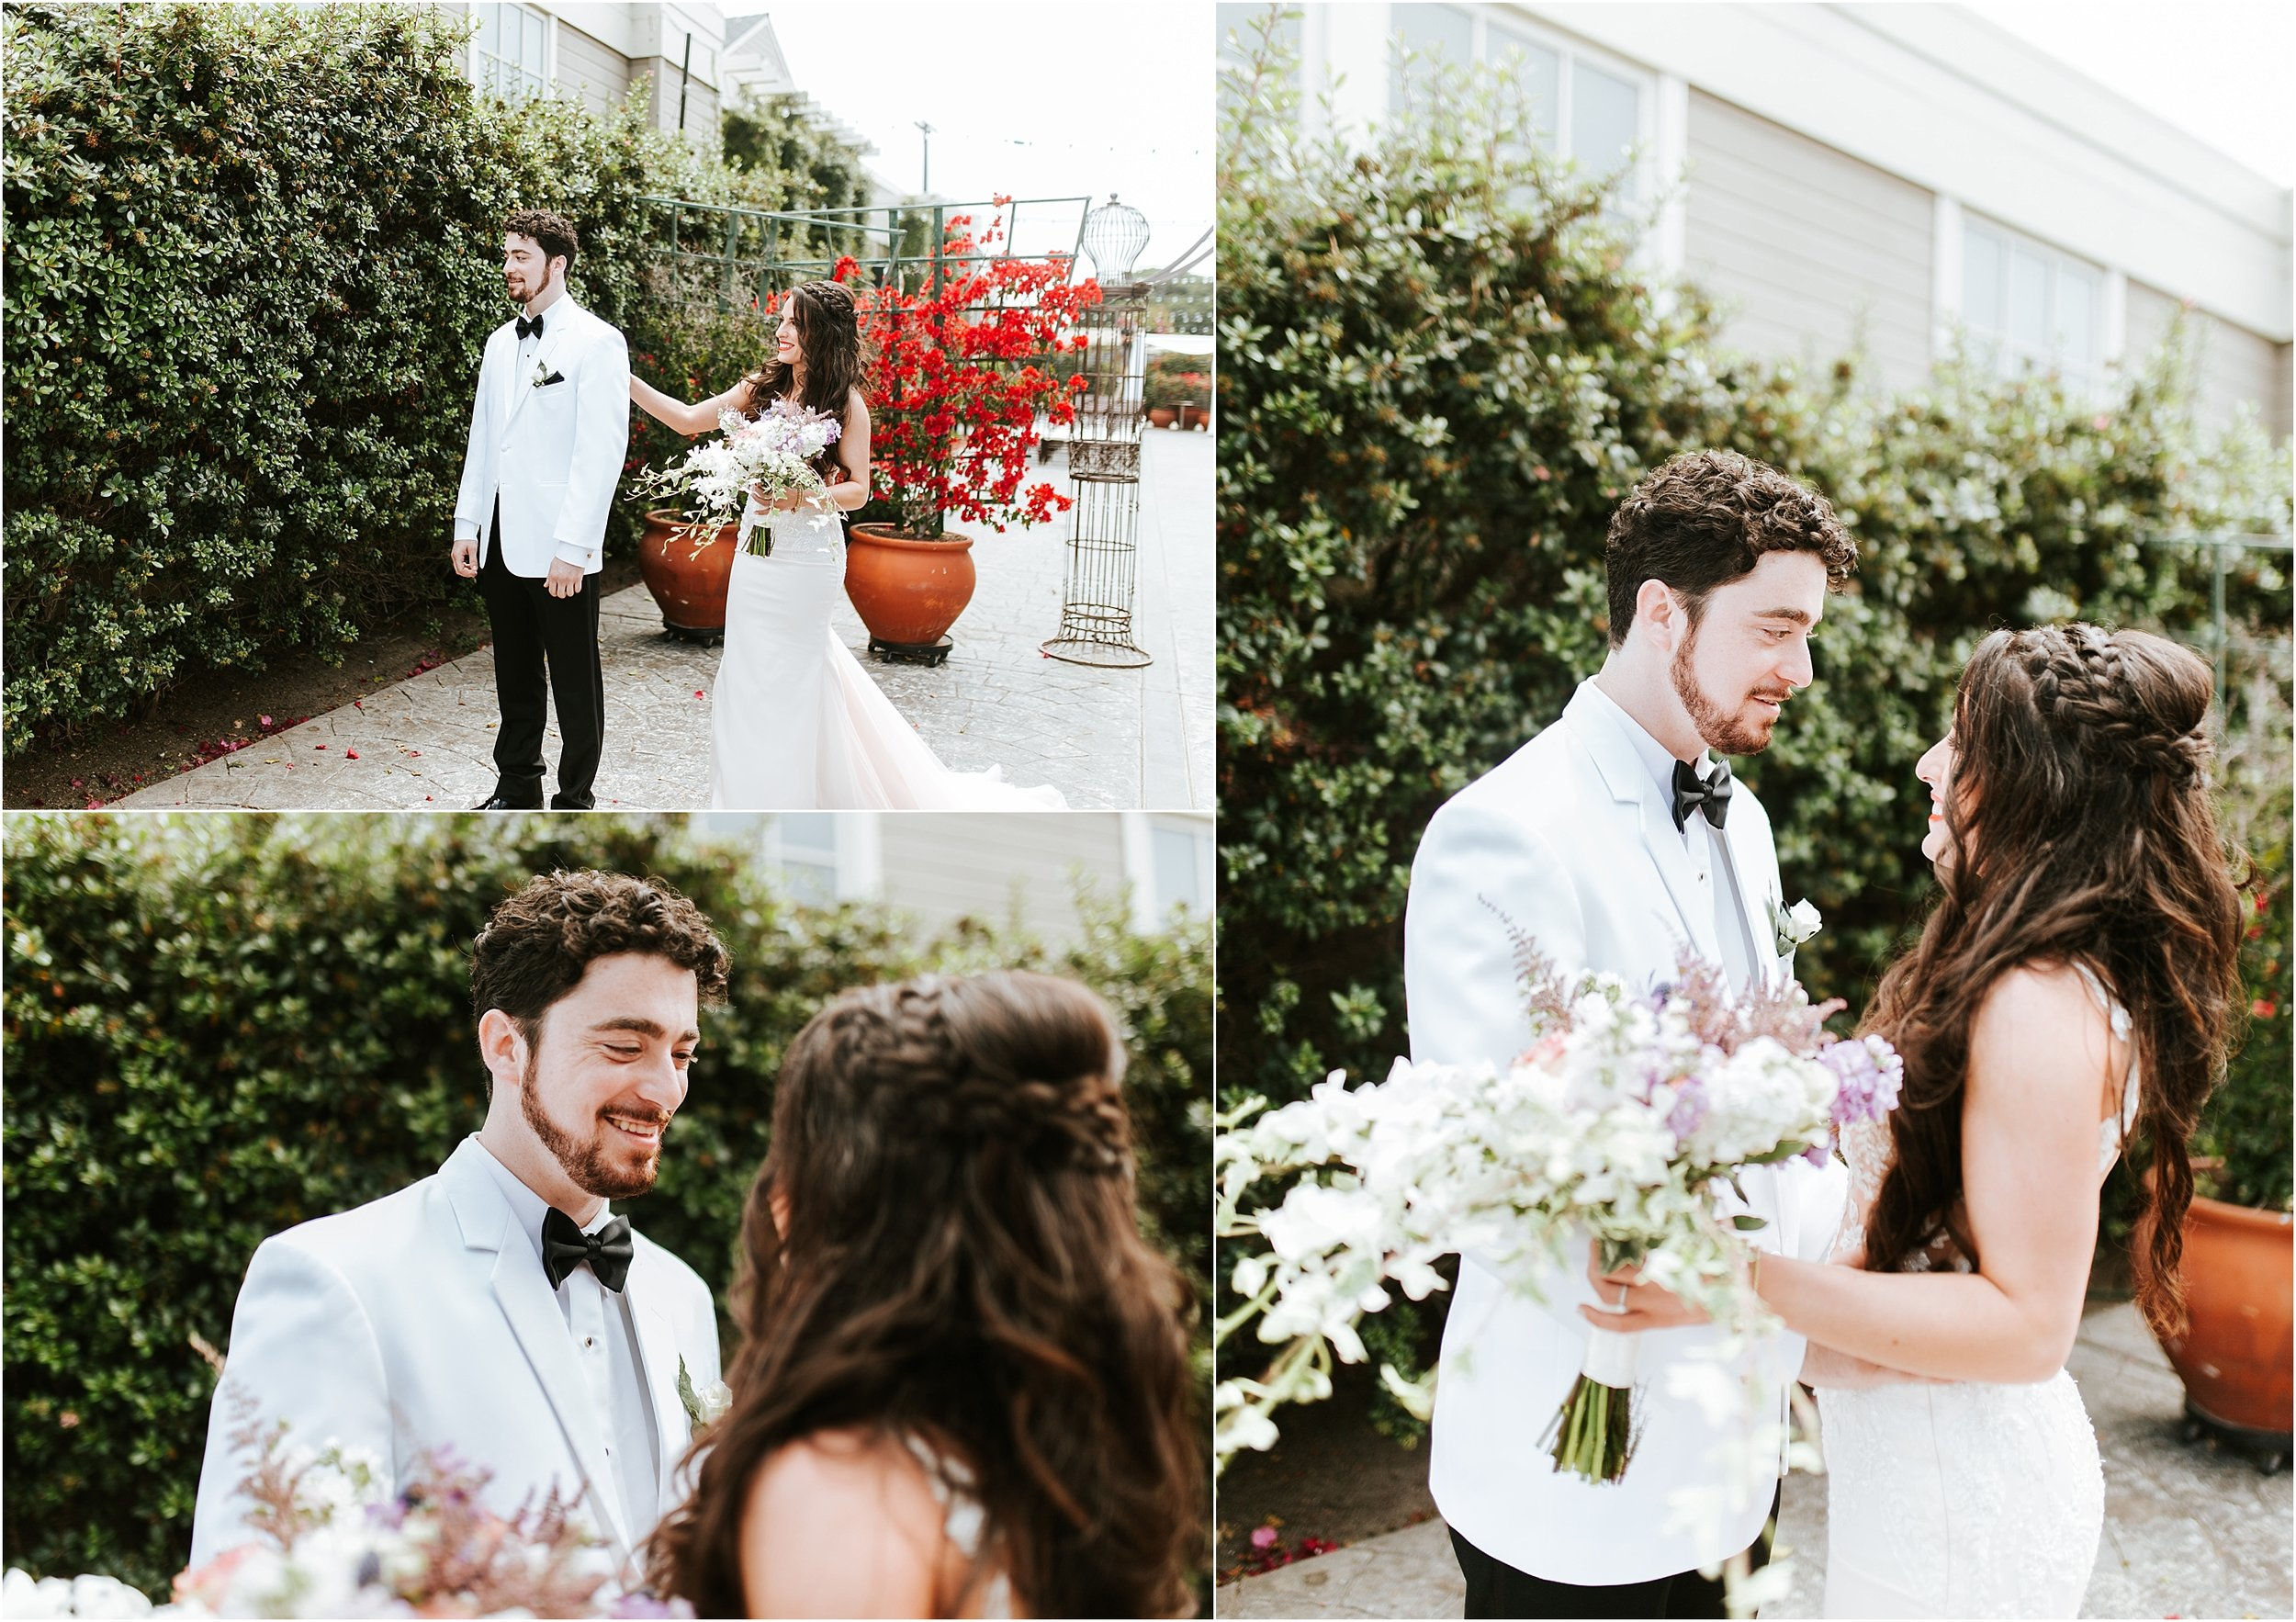 5-Reasons-To-Do-A-First-Look-Inspiration-Clarisse-Rae-Southern-California-Wedding-Photographer-5